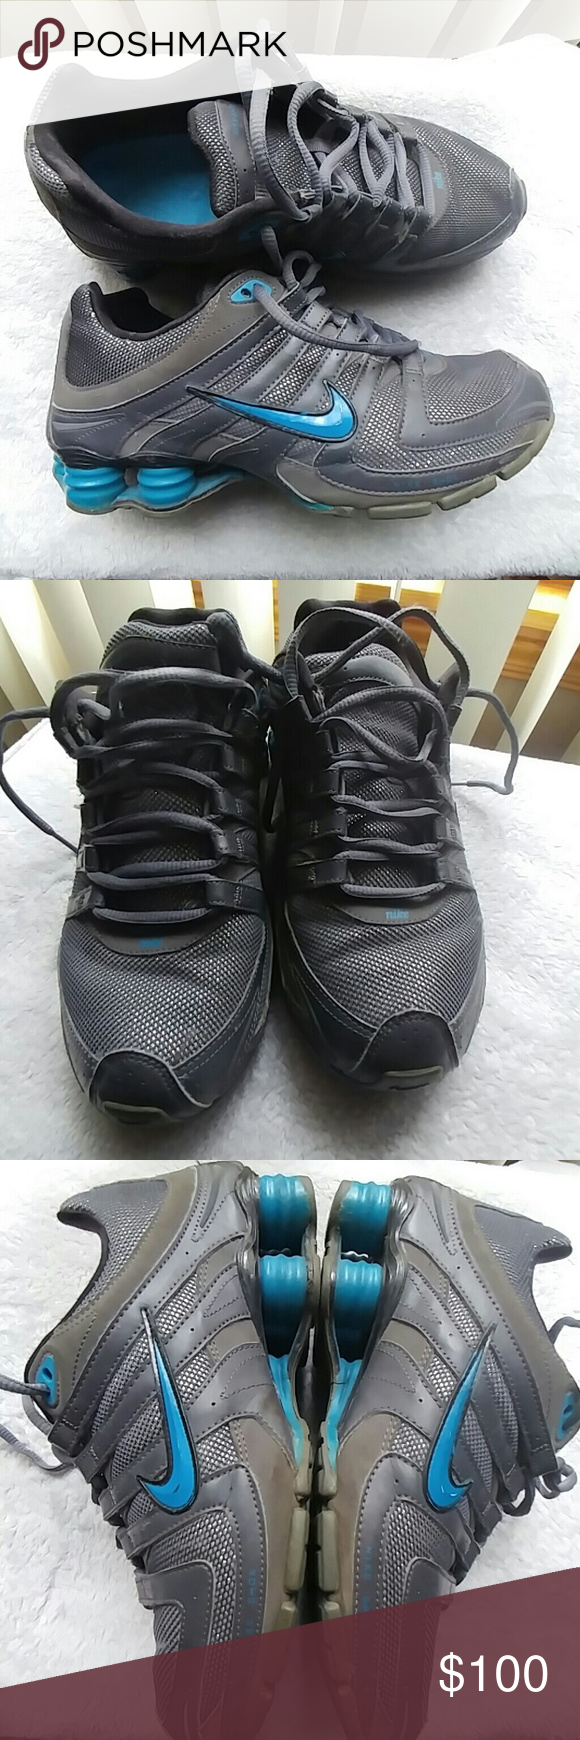 Nike Shoes - shox grey and blue - size 9 Nike Shoes - shox grey and blue - size 9. Good condition, worn twice. Minor wear on Nike logo but not noticeable during wear. Great shoe, just stayed in my closet and never wore them! nike Shoes Athletic Shoes